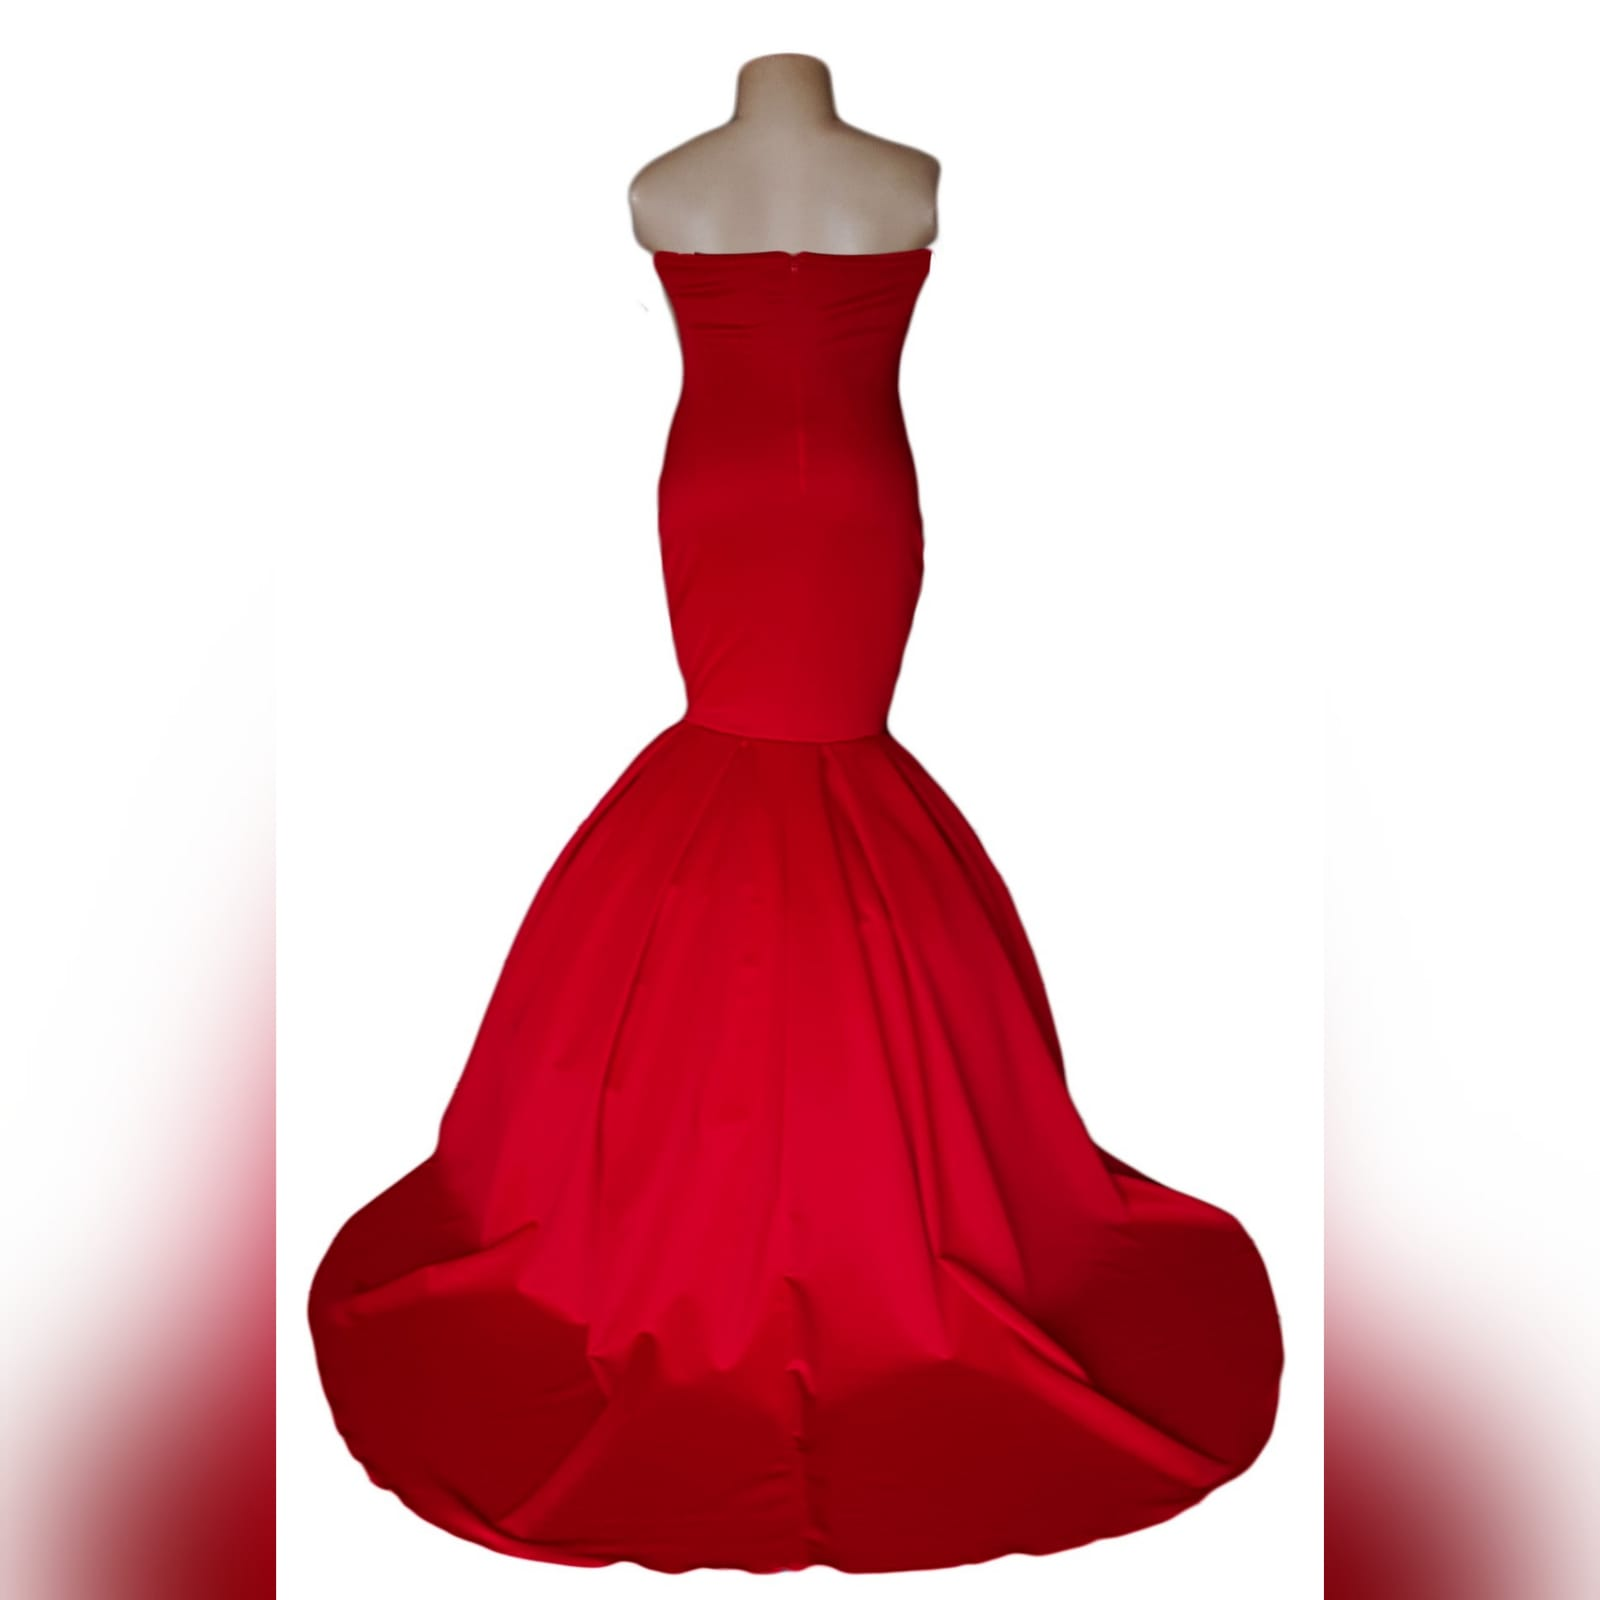 Bright red boobtube mermaid prom dress 6 bright red boobtube mermaid prom dress with a sweetheart neckline, bottom with volume and a train.